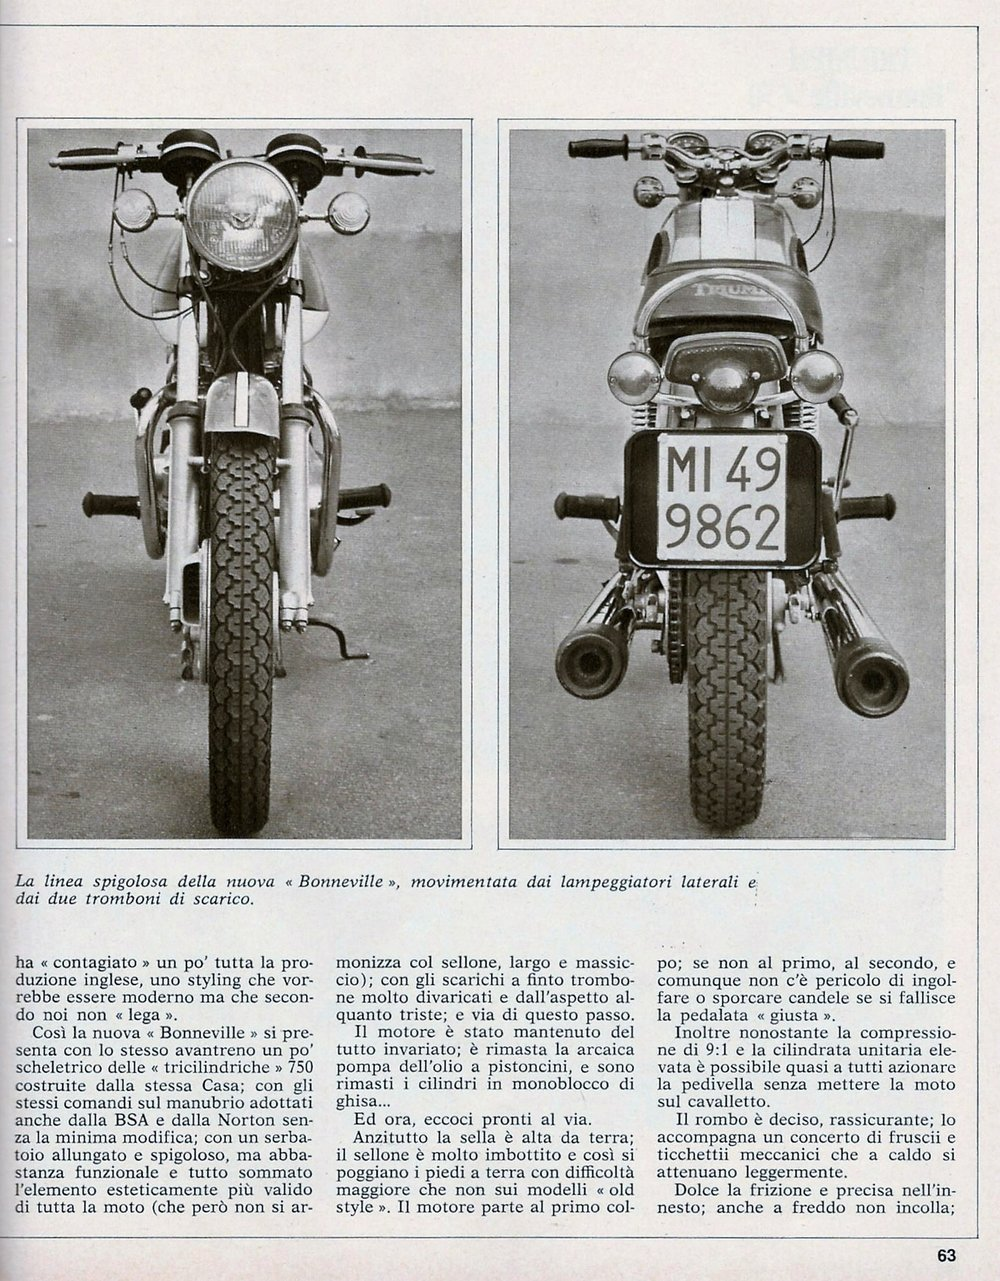 1972 Triumph Bonneville road test.6.jpg